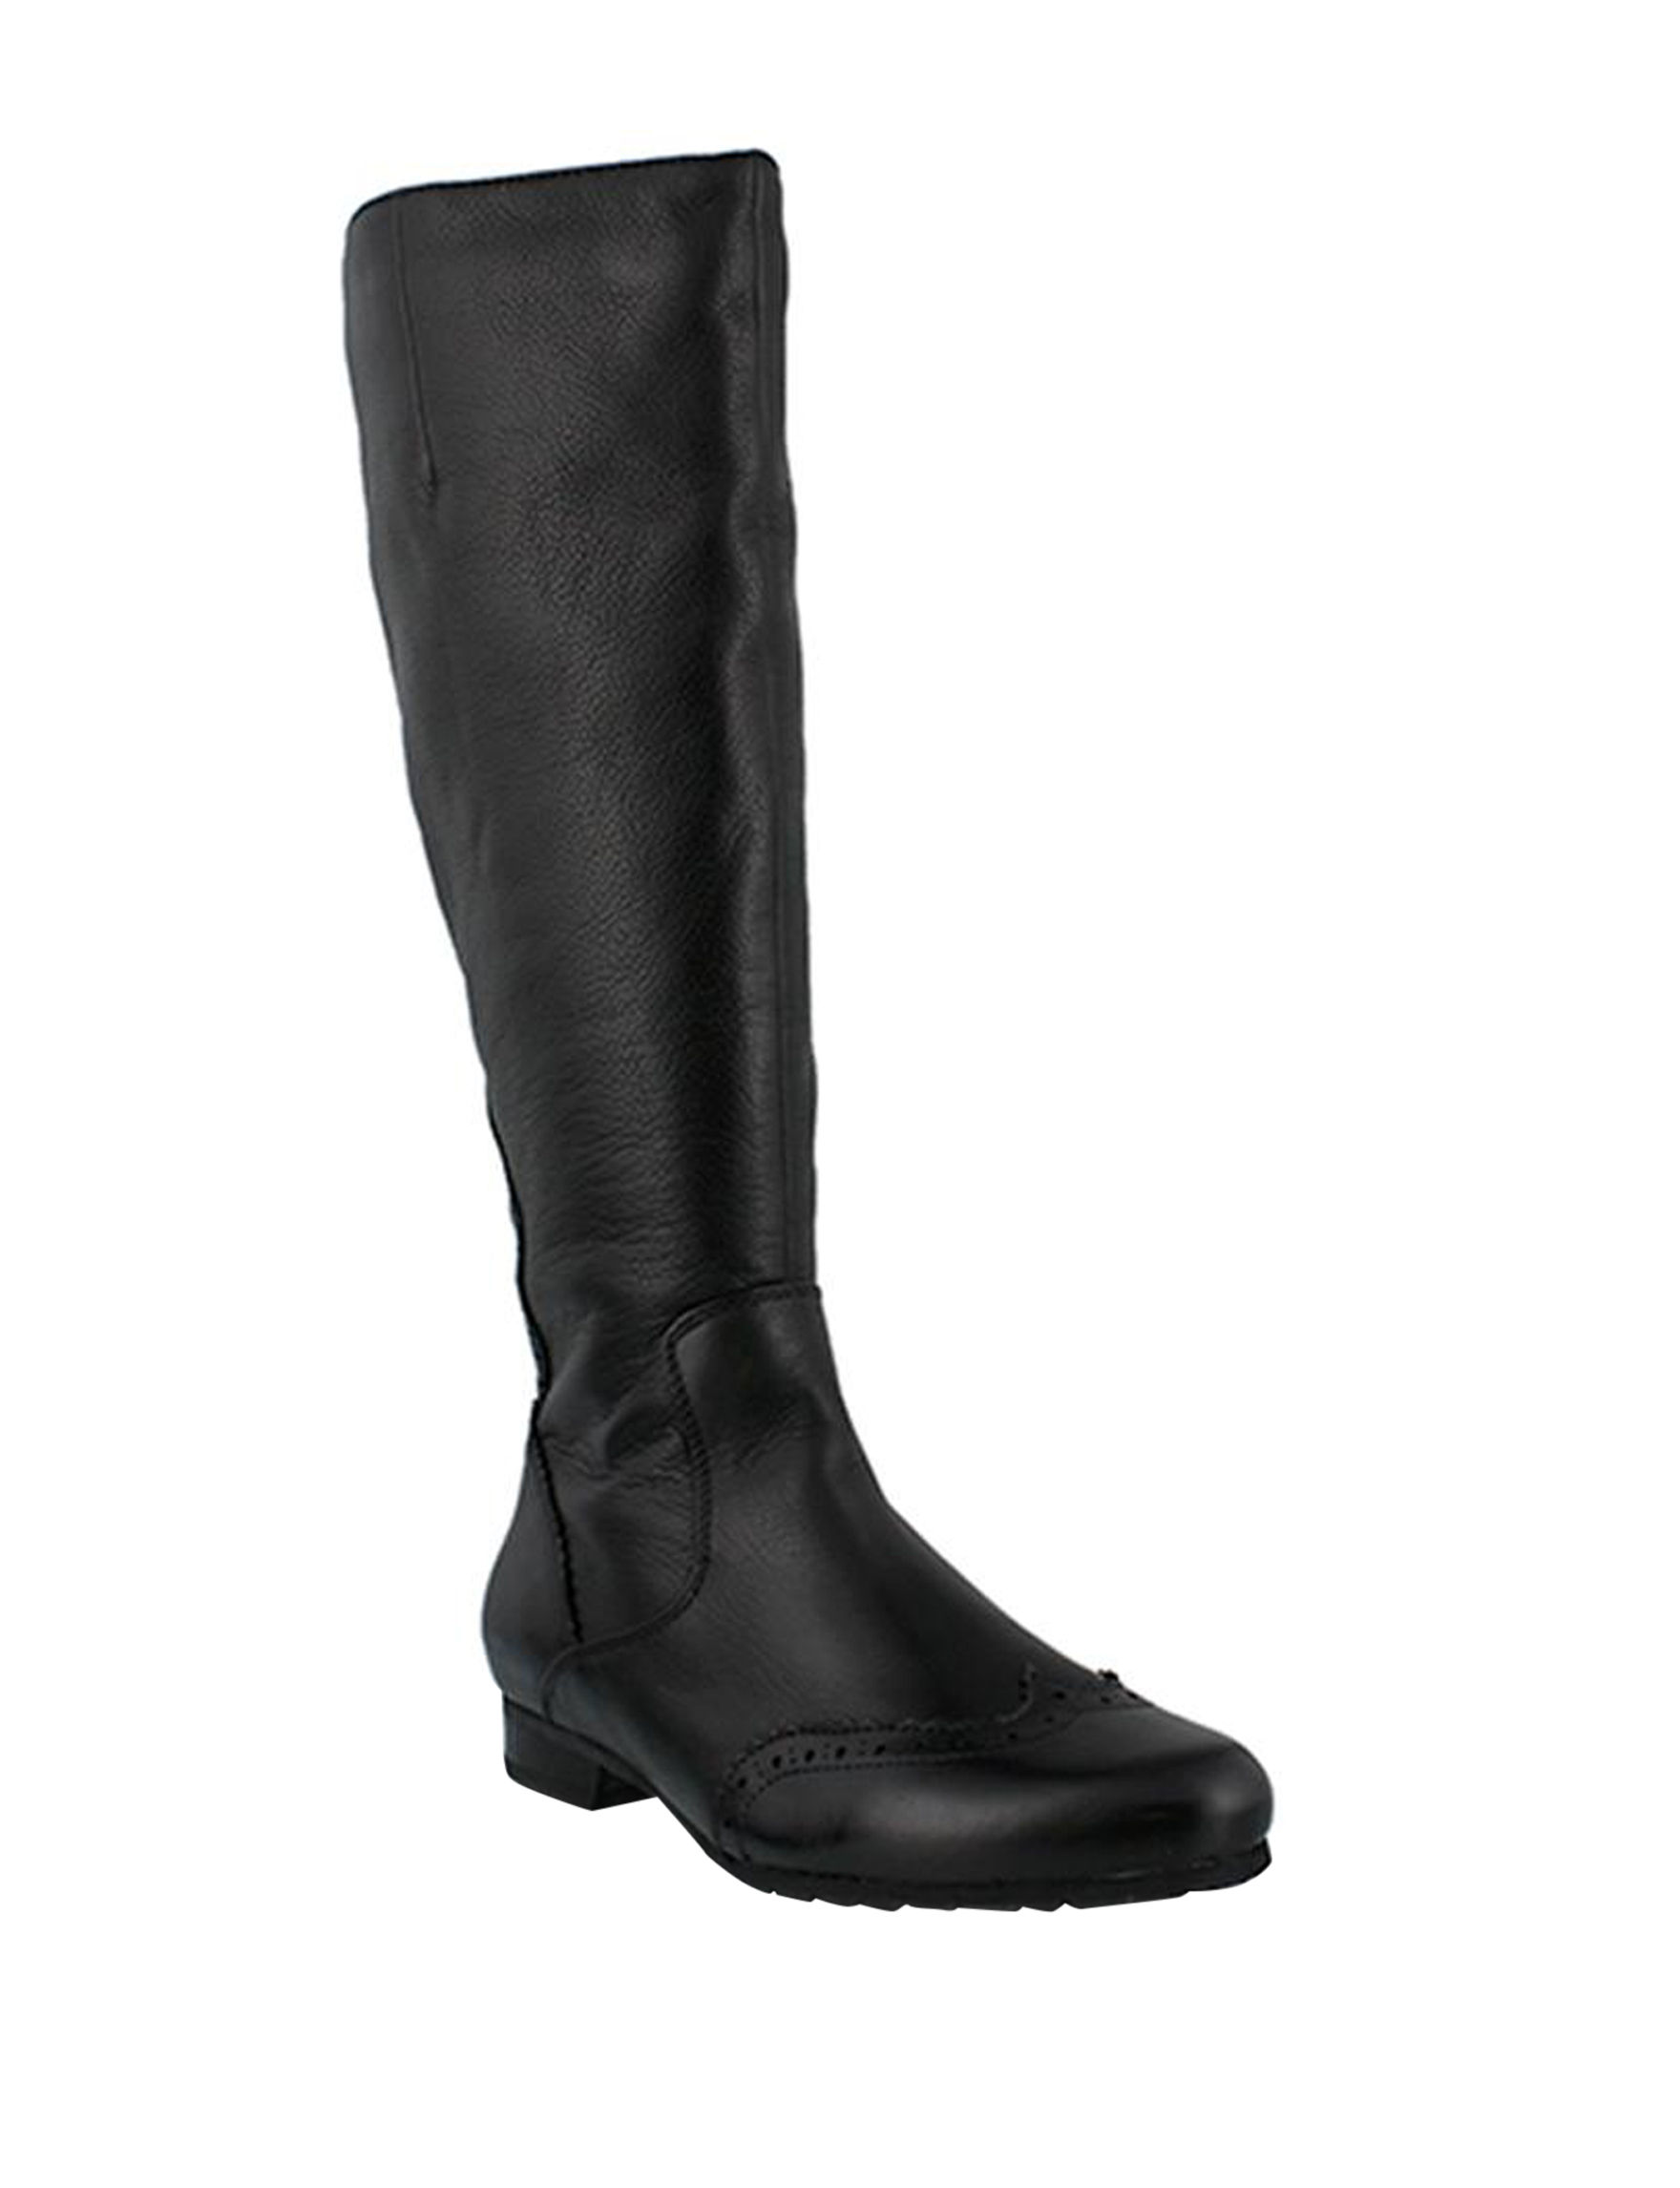 Spring Step Black Riding Boots